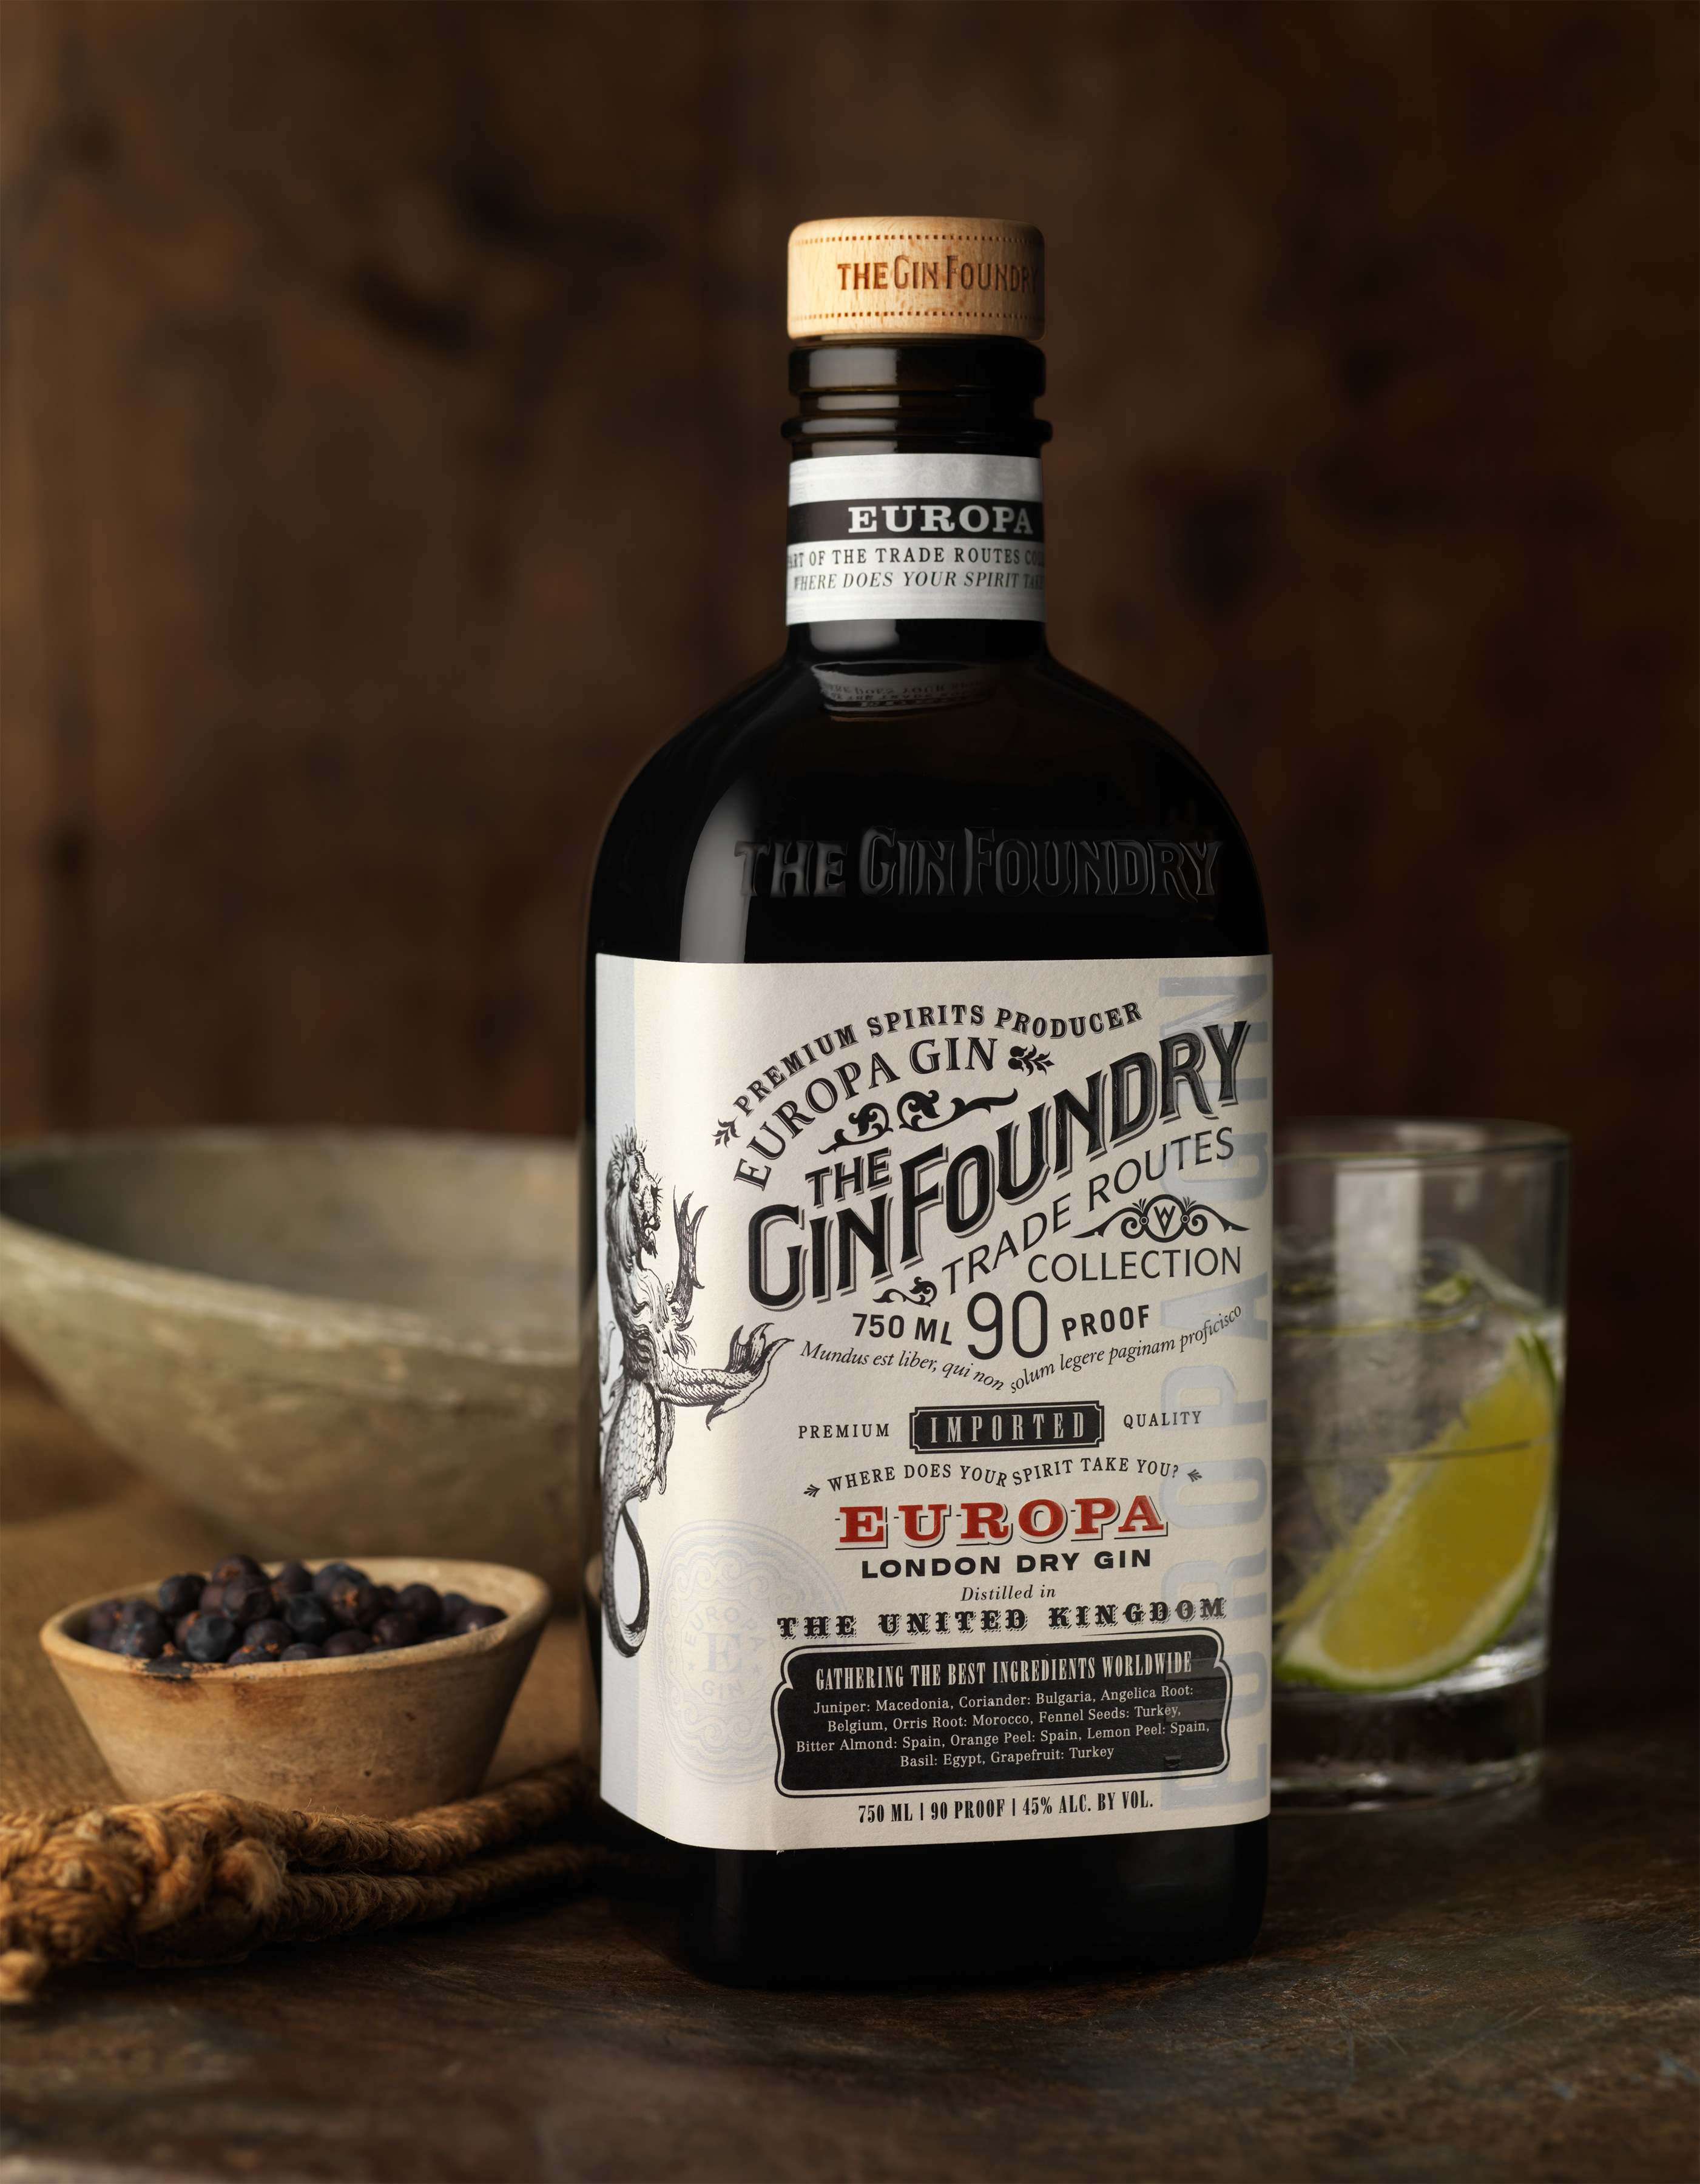 The Gin Foundry Pays Tribute to the History of Trade – CF Napa Brand Design